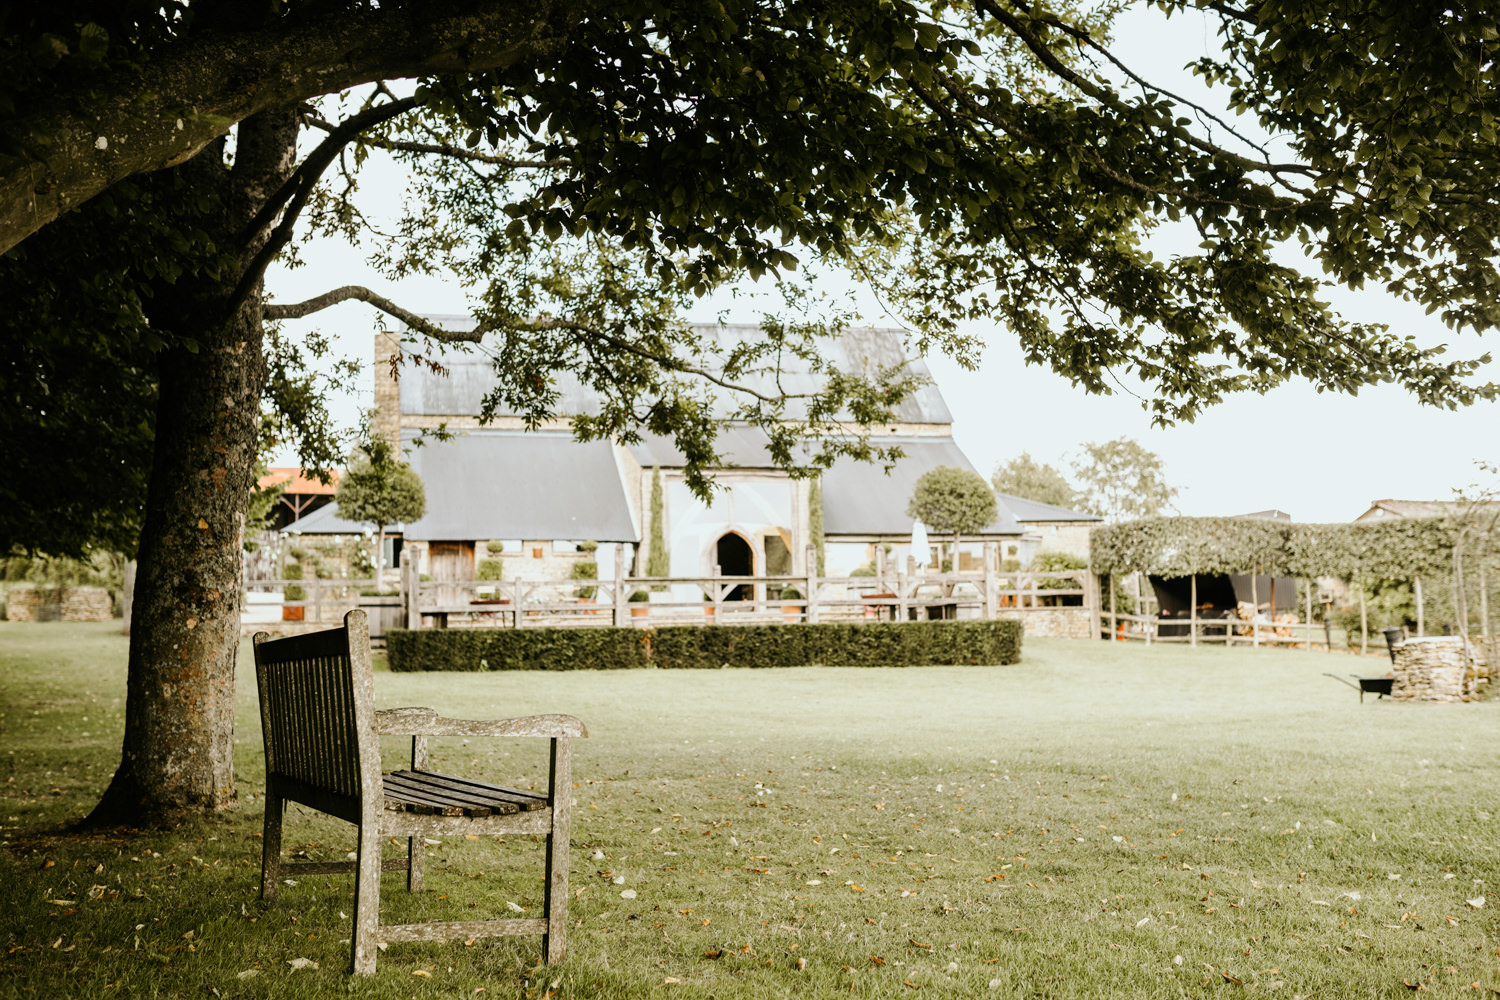 gardens of the Cripps Barn wedding venue Cotswolds